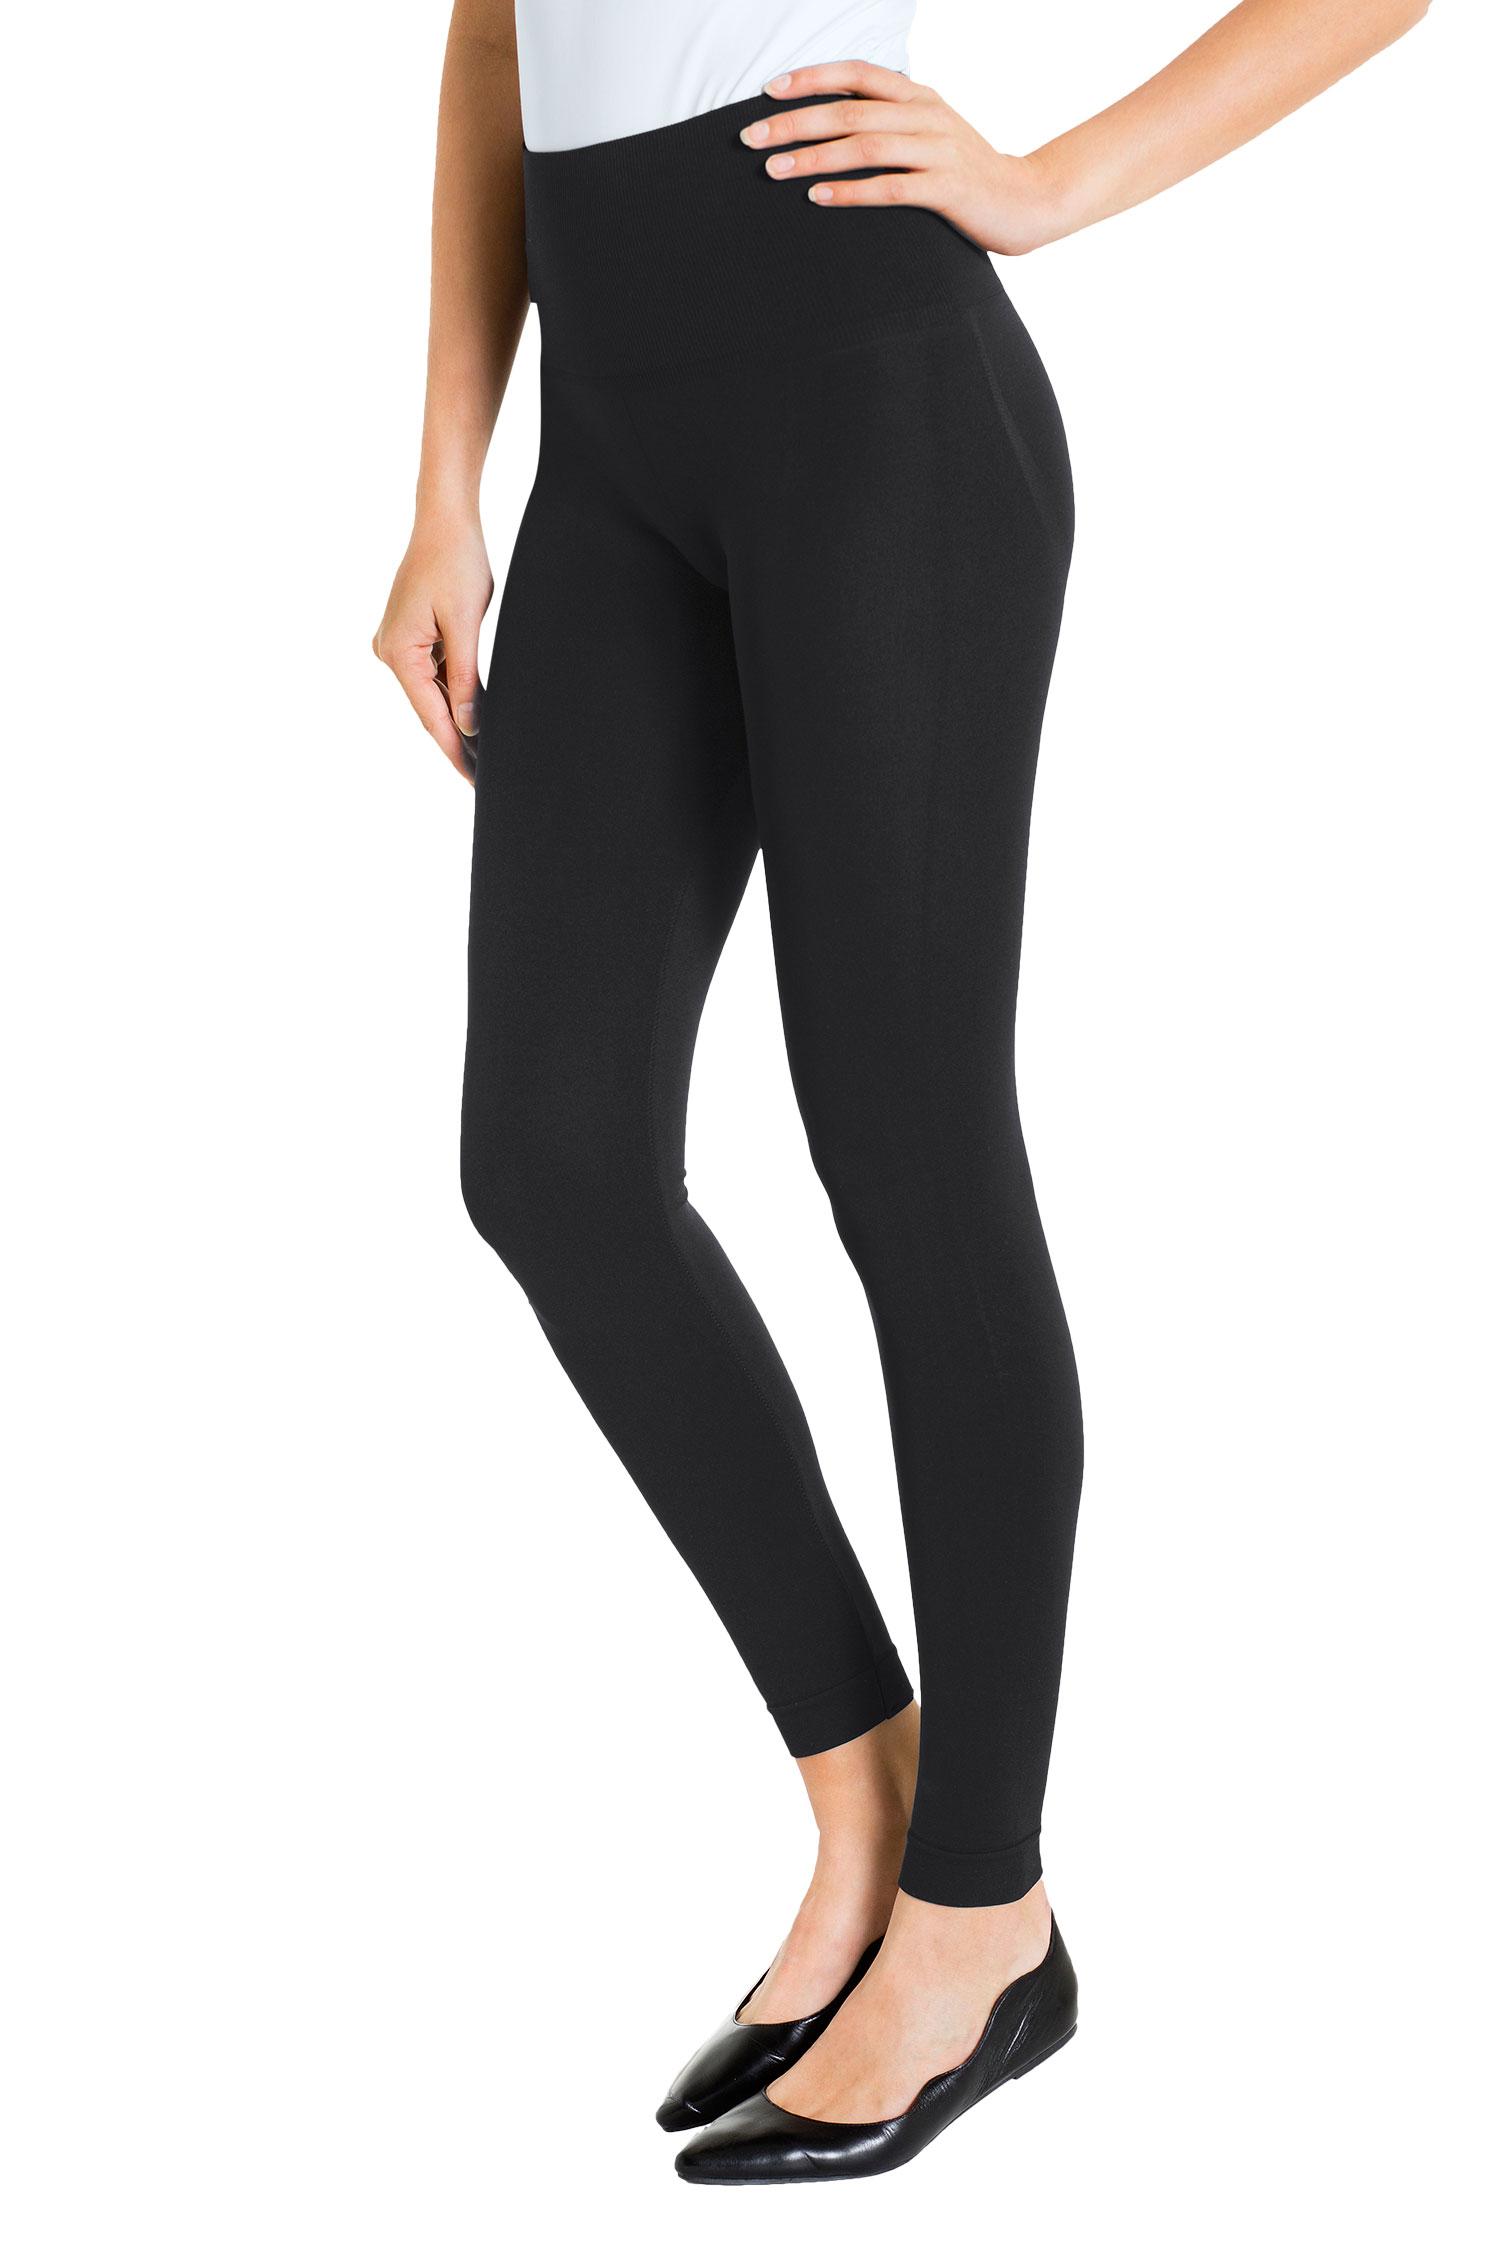 The leggings that'll go with the winter knit. Style 82416